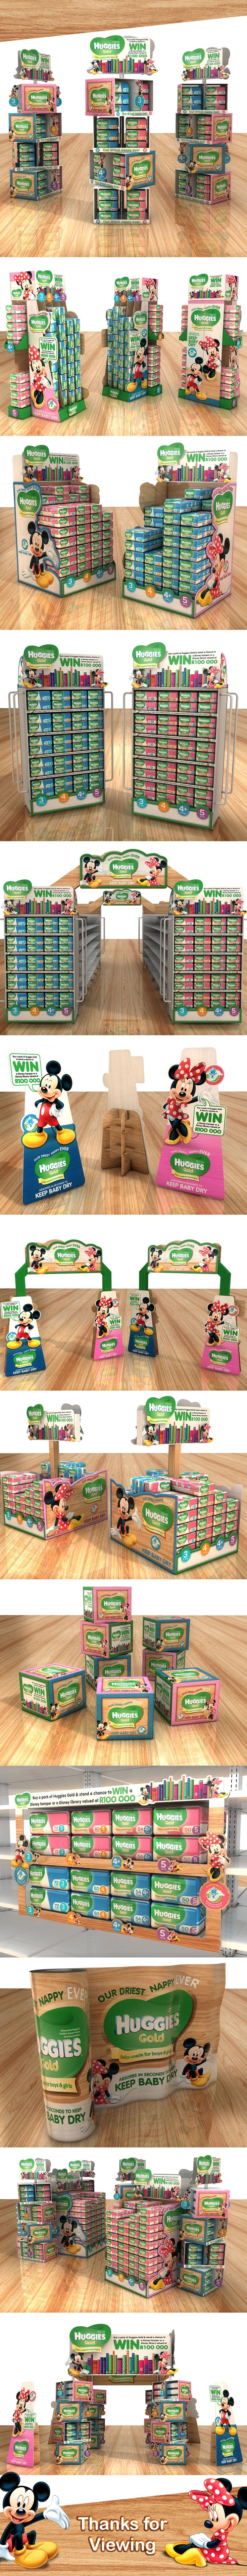 Huggies Gold Campaign on Behance